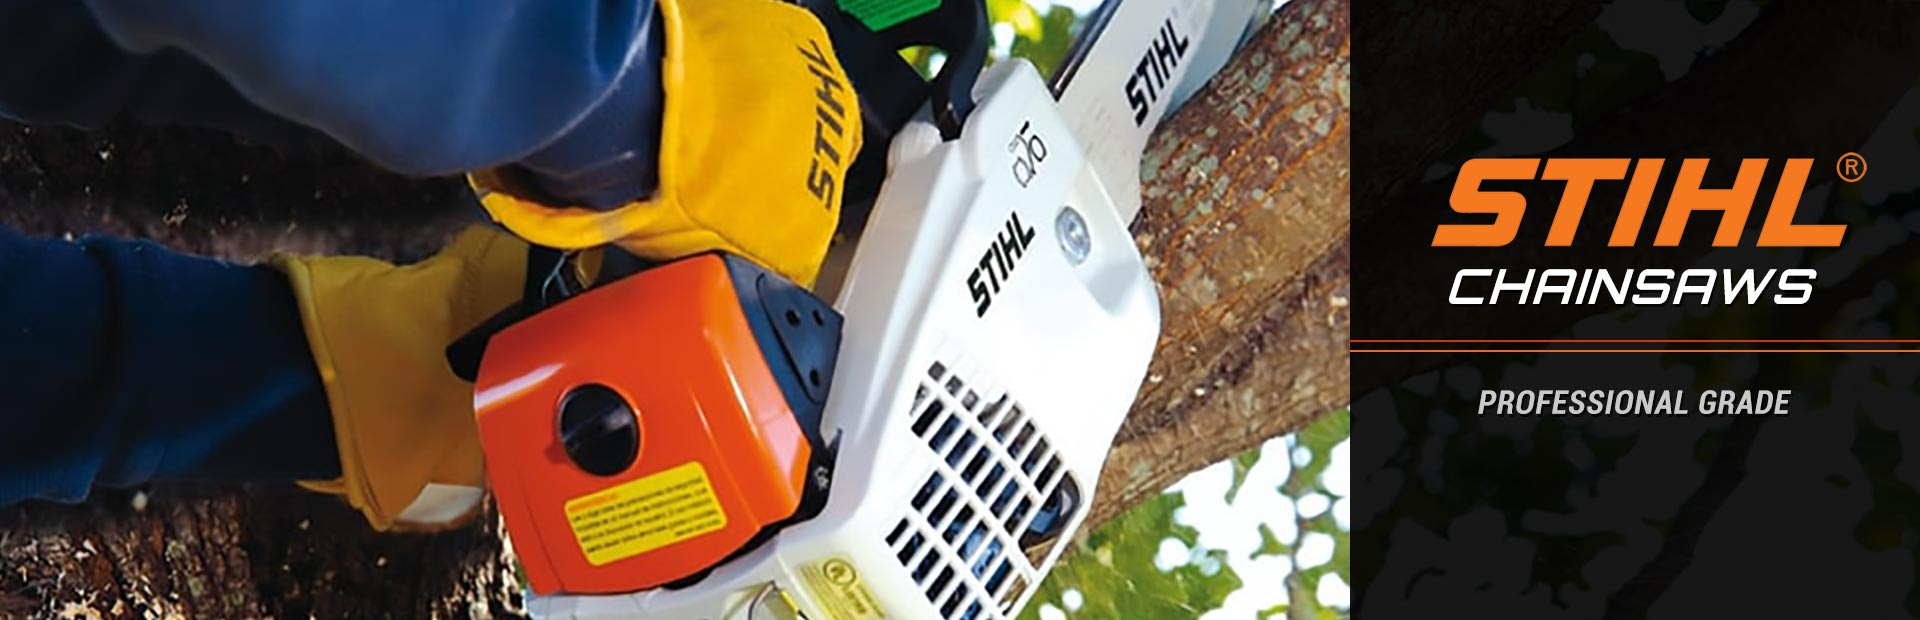 STIHL Chainsaws: Click here to view the models.